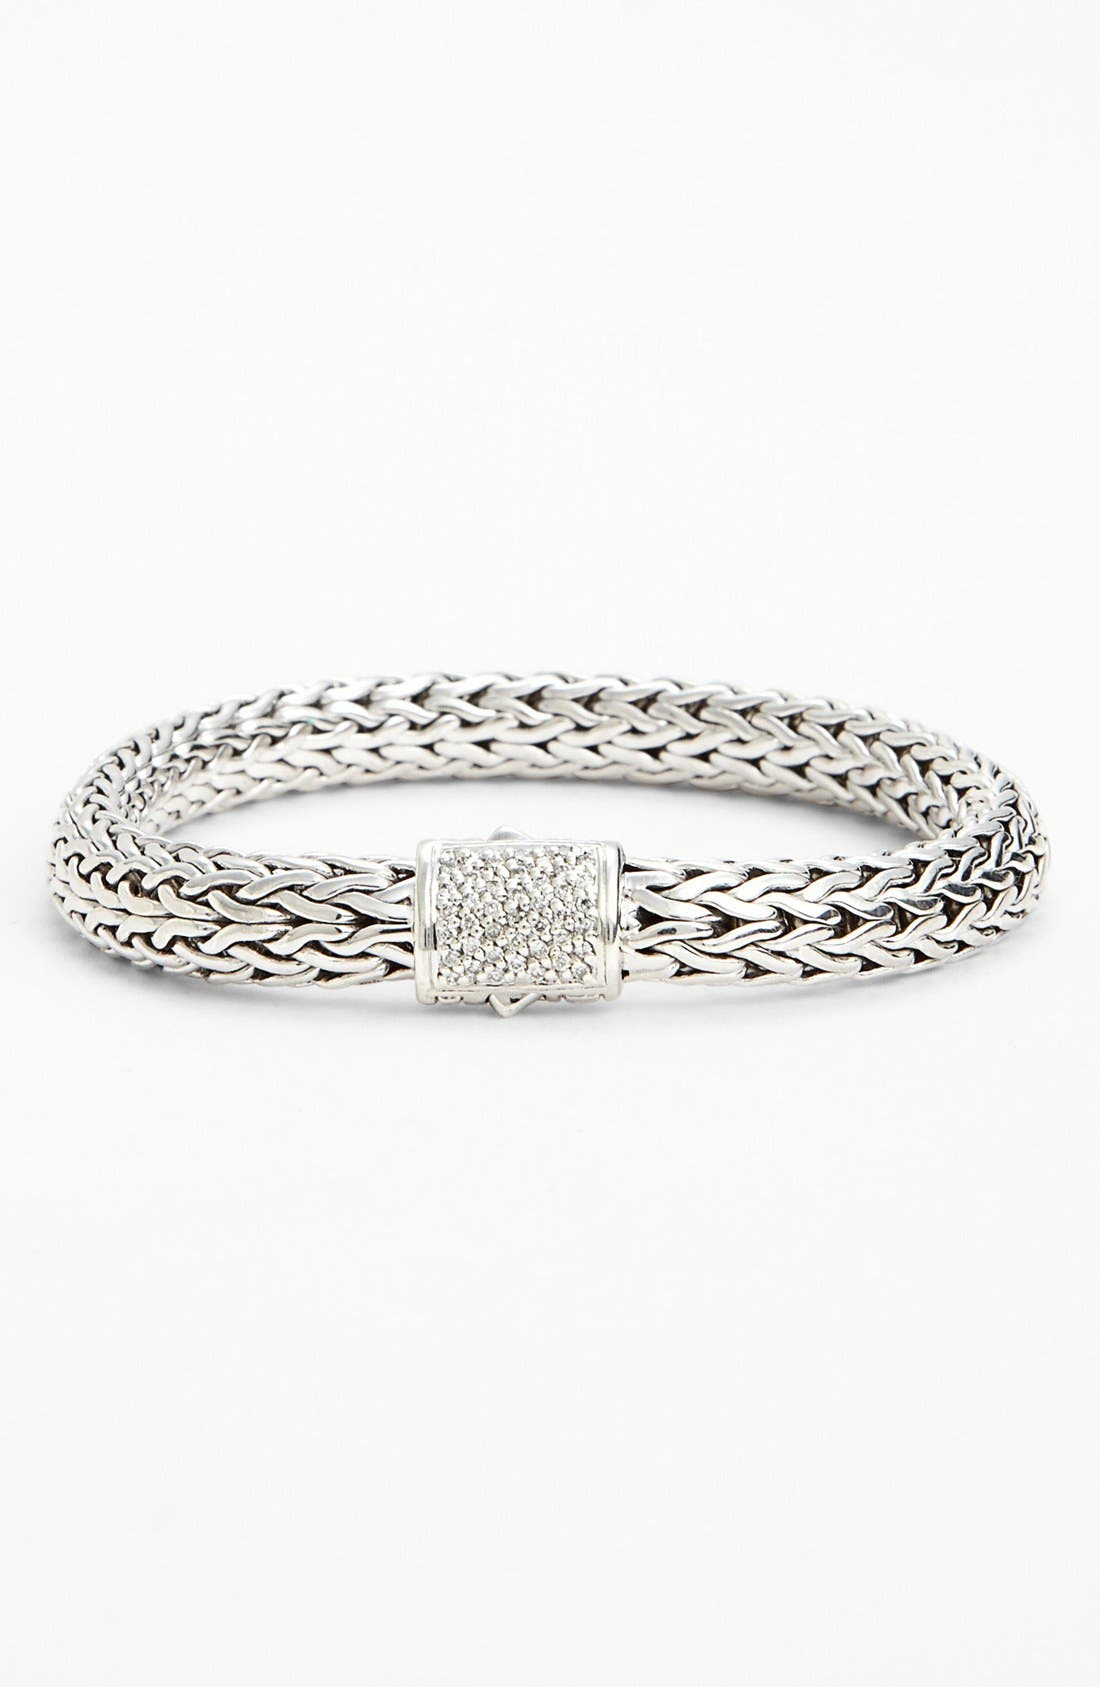 Alternate Image 1 Selected - John Hardy 'Classic Chain' Small Bracelet with Diamond Clasp